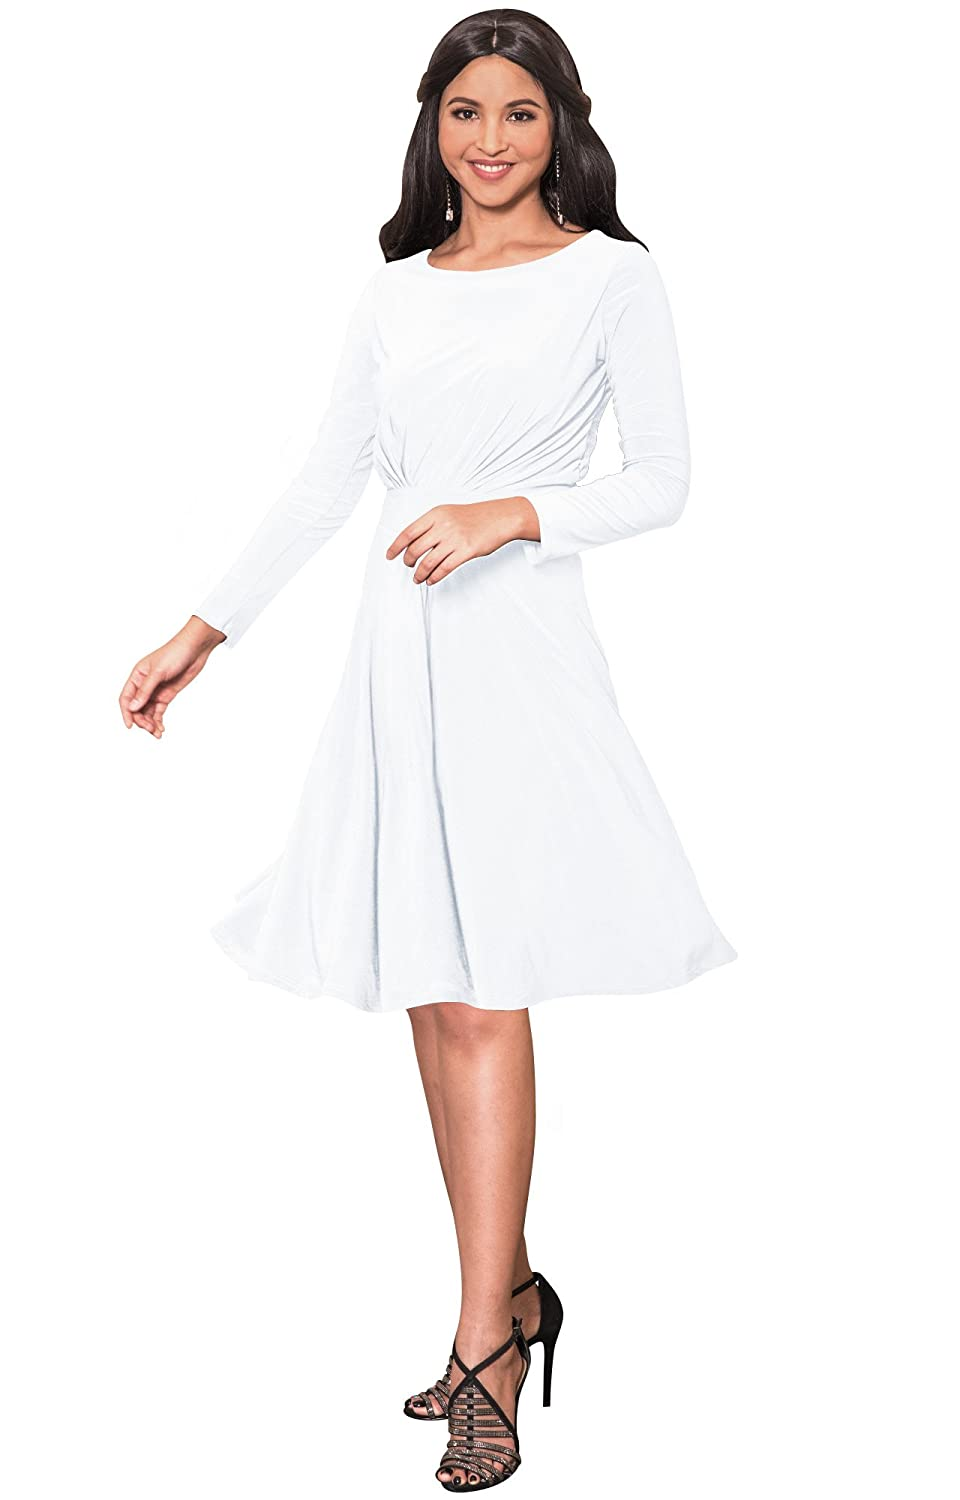 9835abc8d7 GARMENT CARE - Hand or machine washable. Can be dry-cleaned if desired. PLUS  SIZE - This great short dress design is also available in plus sizes